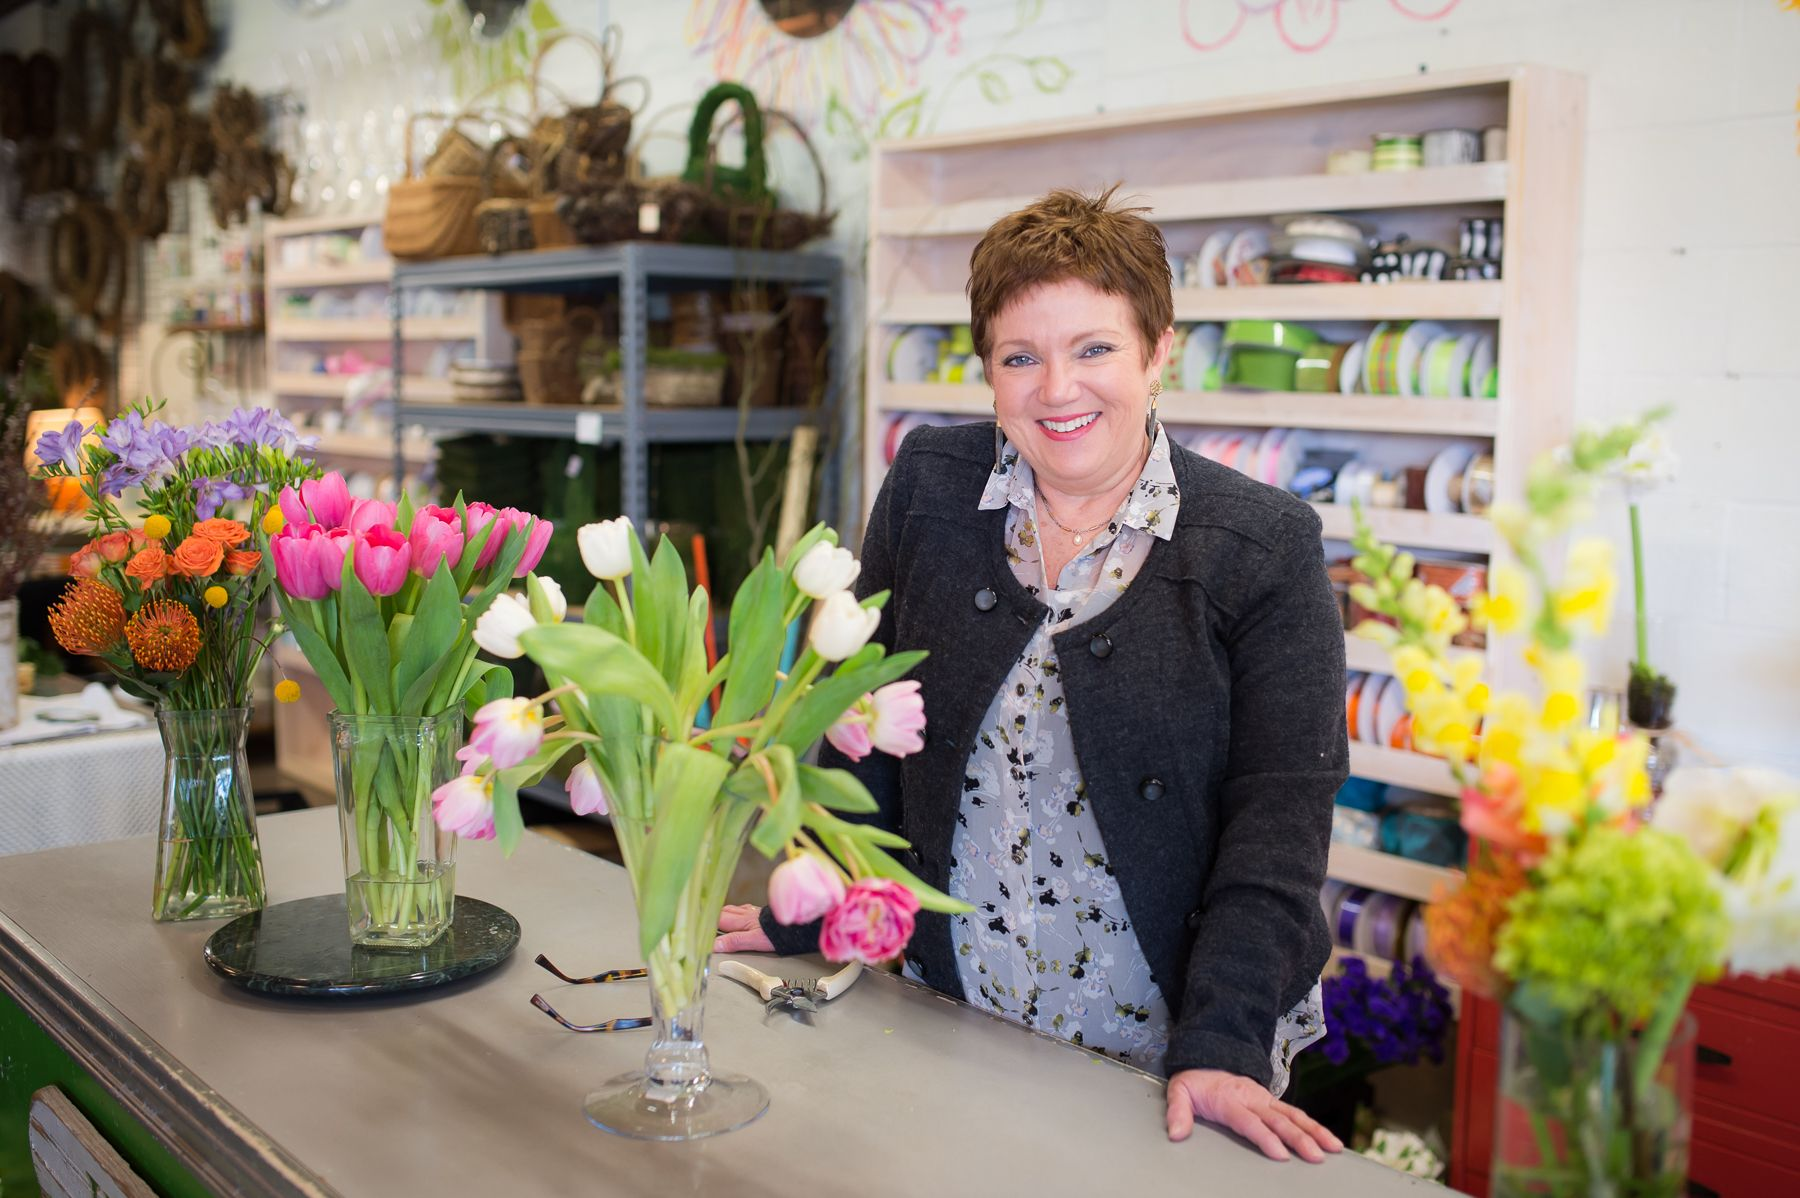 Sami Price, owner of Just Priceless, stands smiling at a counter with several vases of cut flowers.